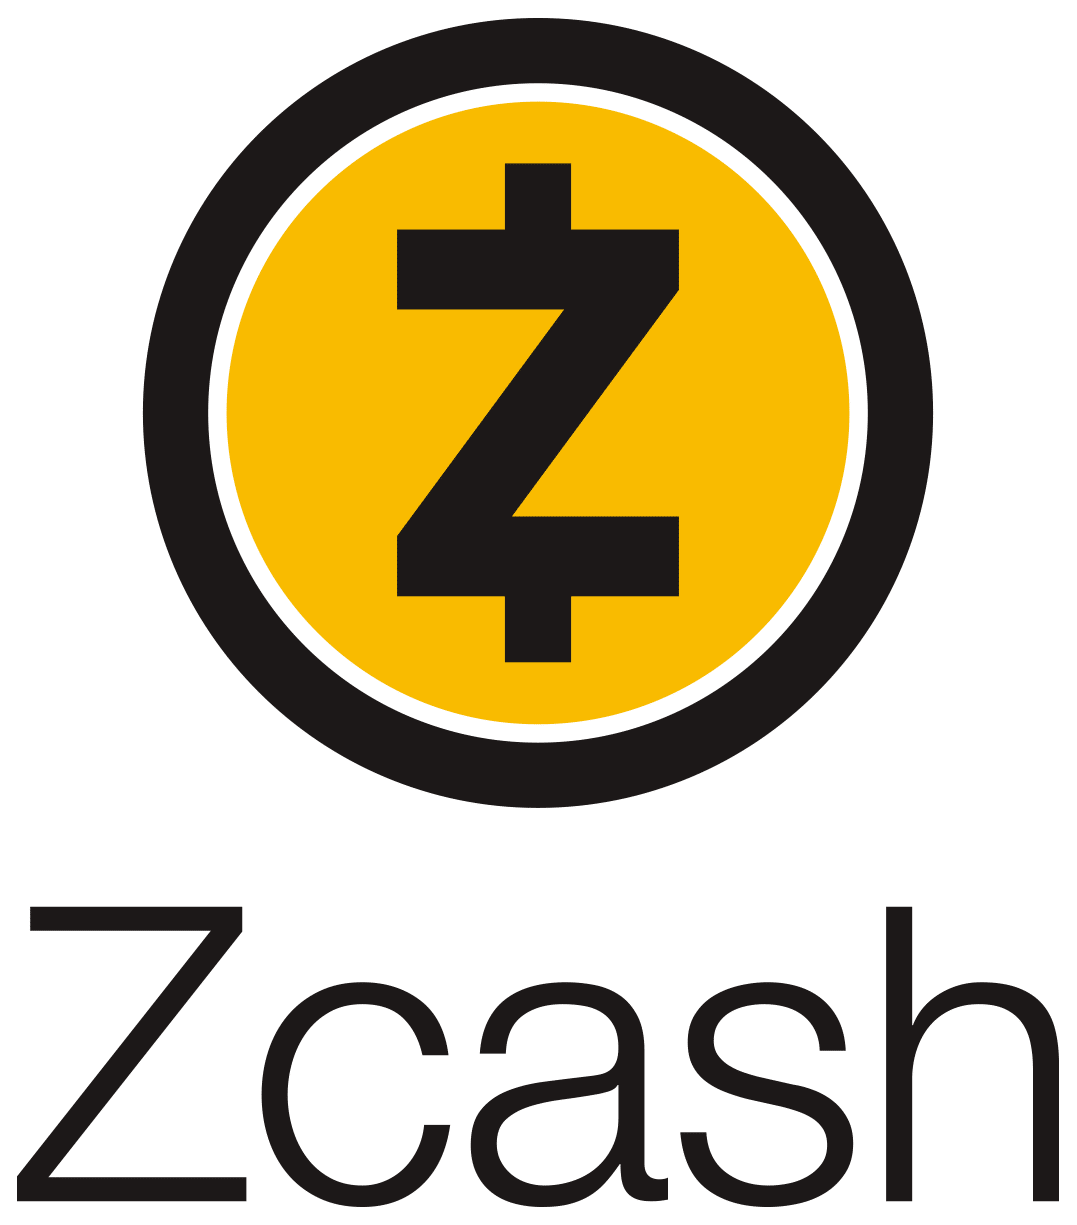 Full color vertical Zcash logo